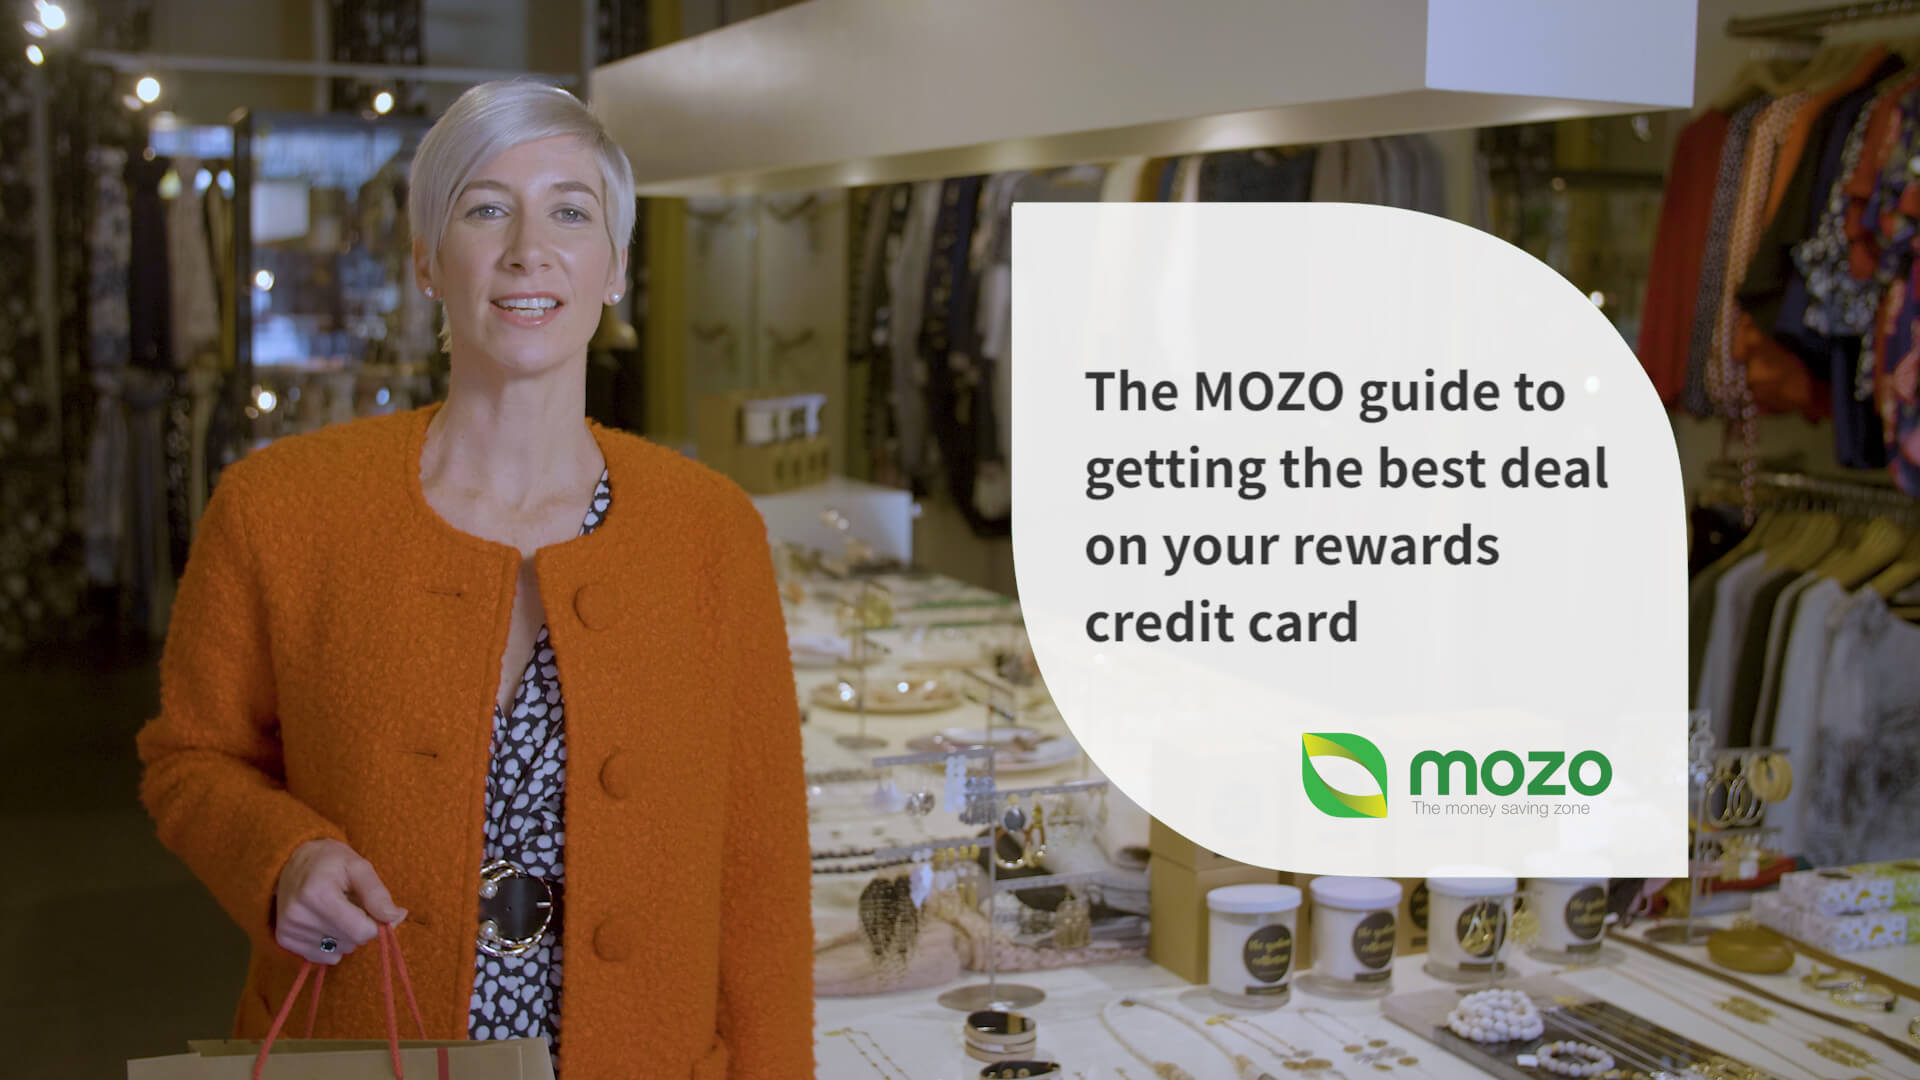 The Mozo guide to getting the best deal on your rewards credit card